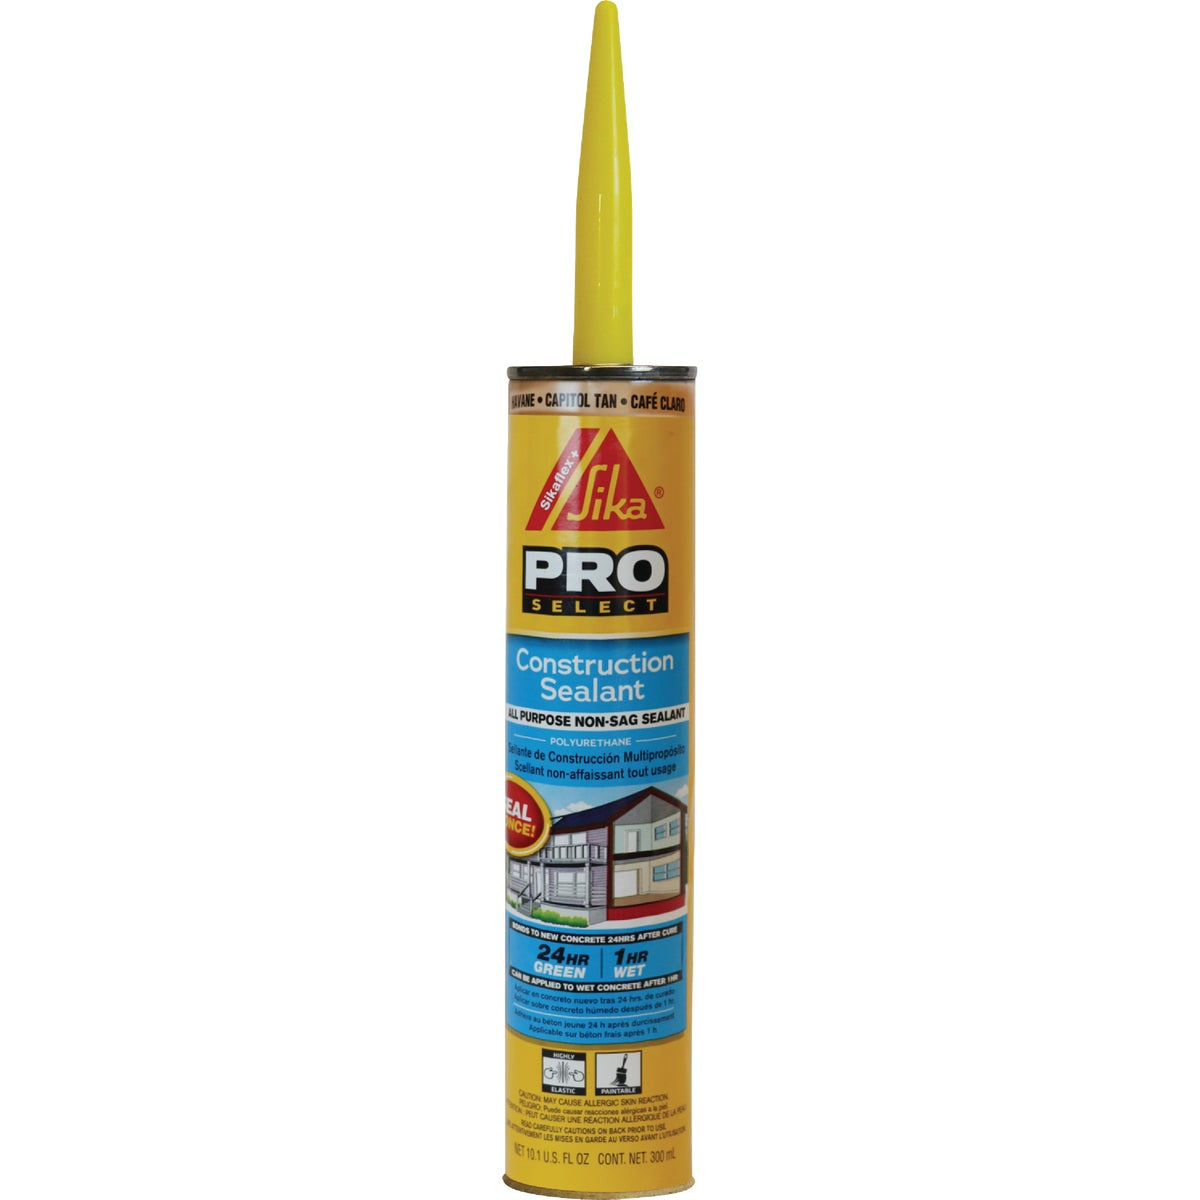 Sika Corp. 10 TAN SFLX CONS SEALANT 107840